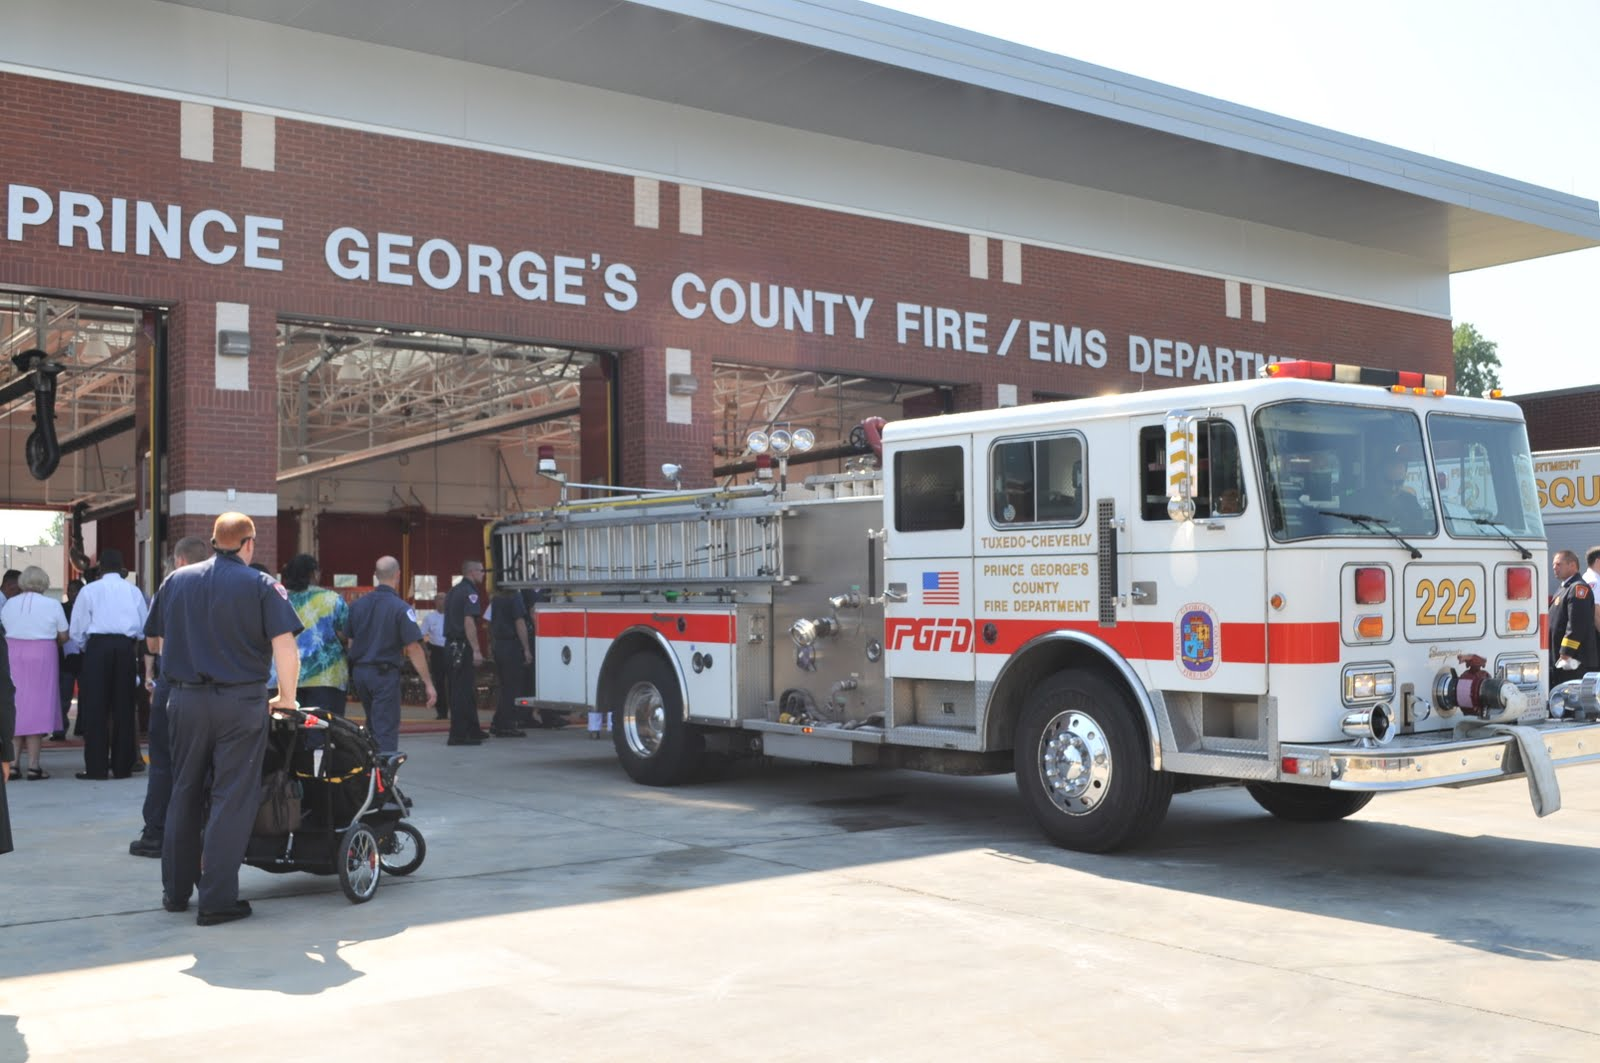 Prince George's County Fire/EMS Department: Sep 2, 2010